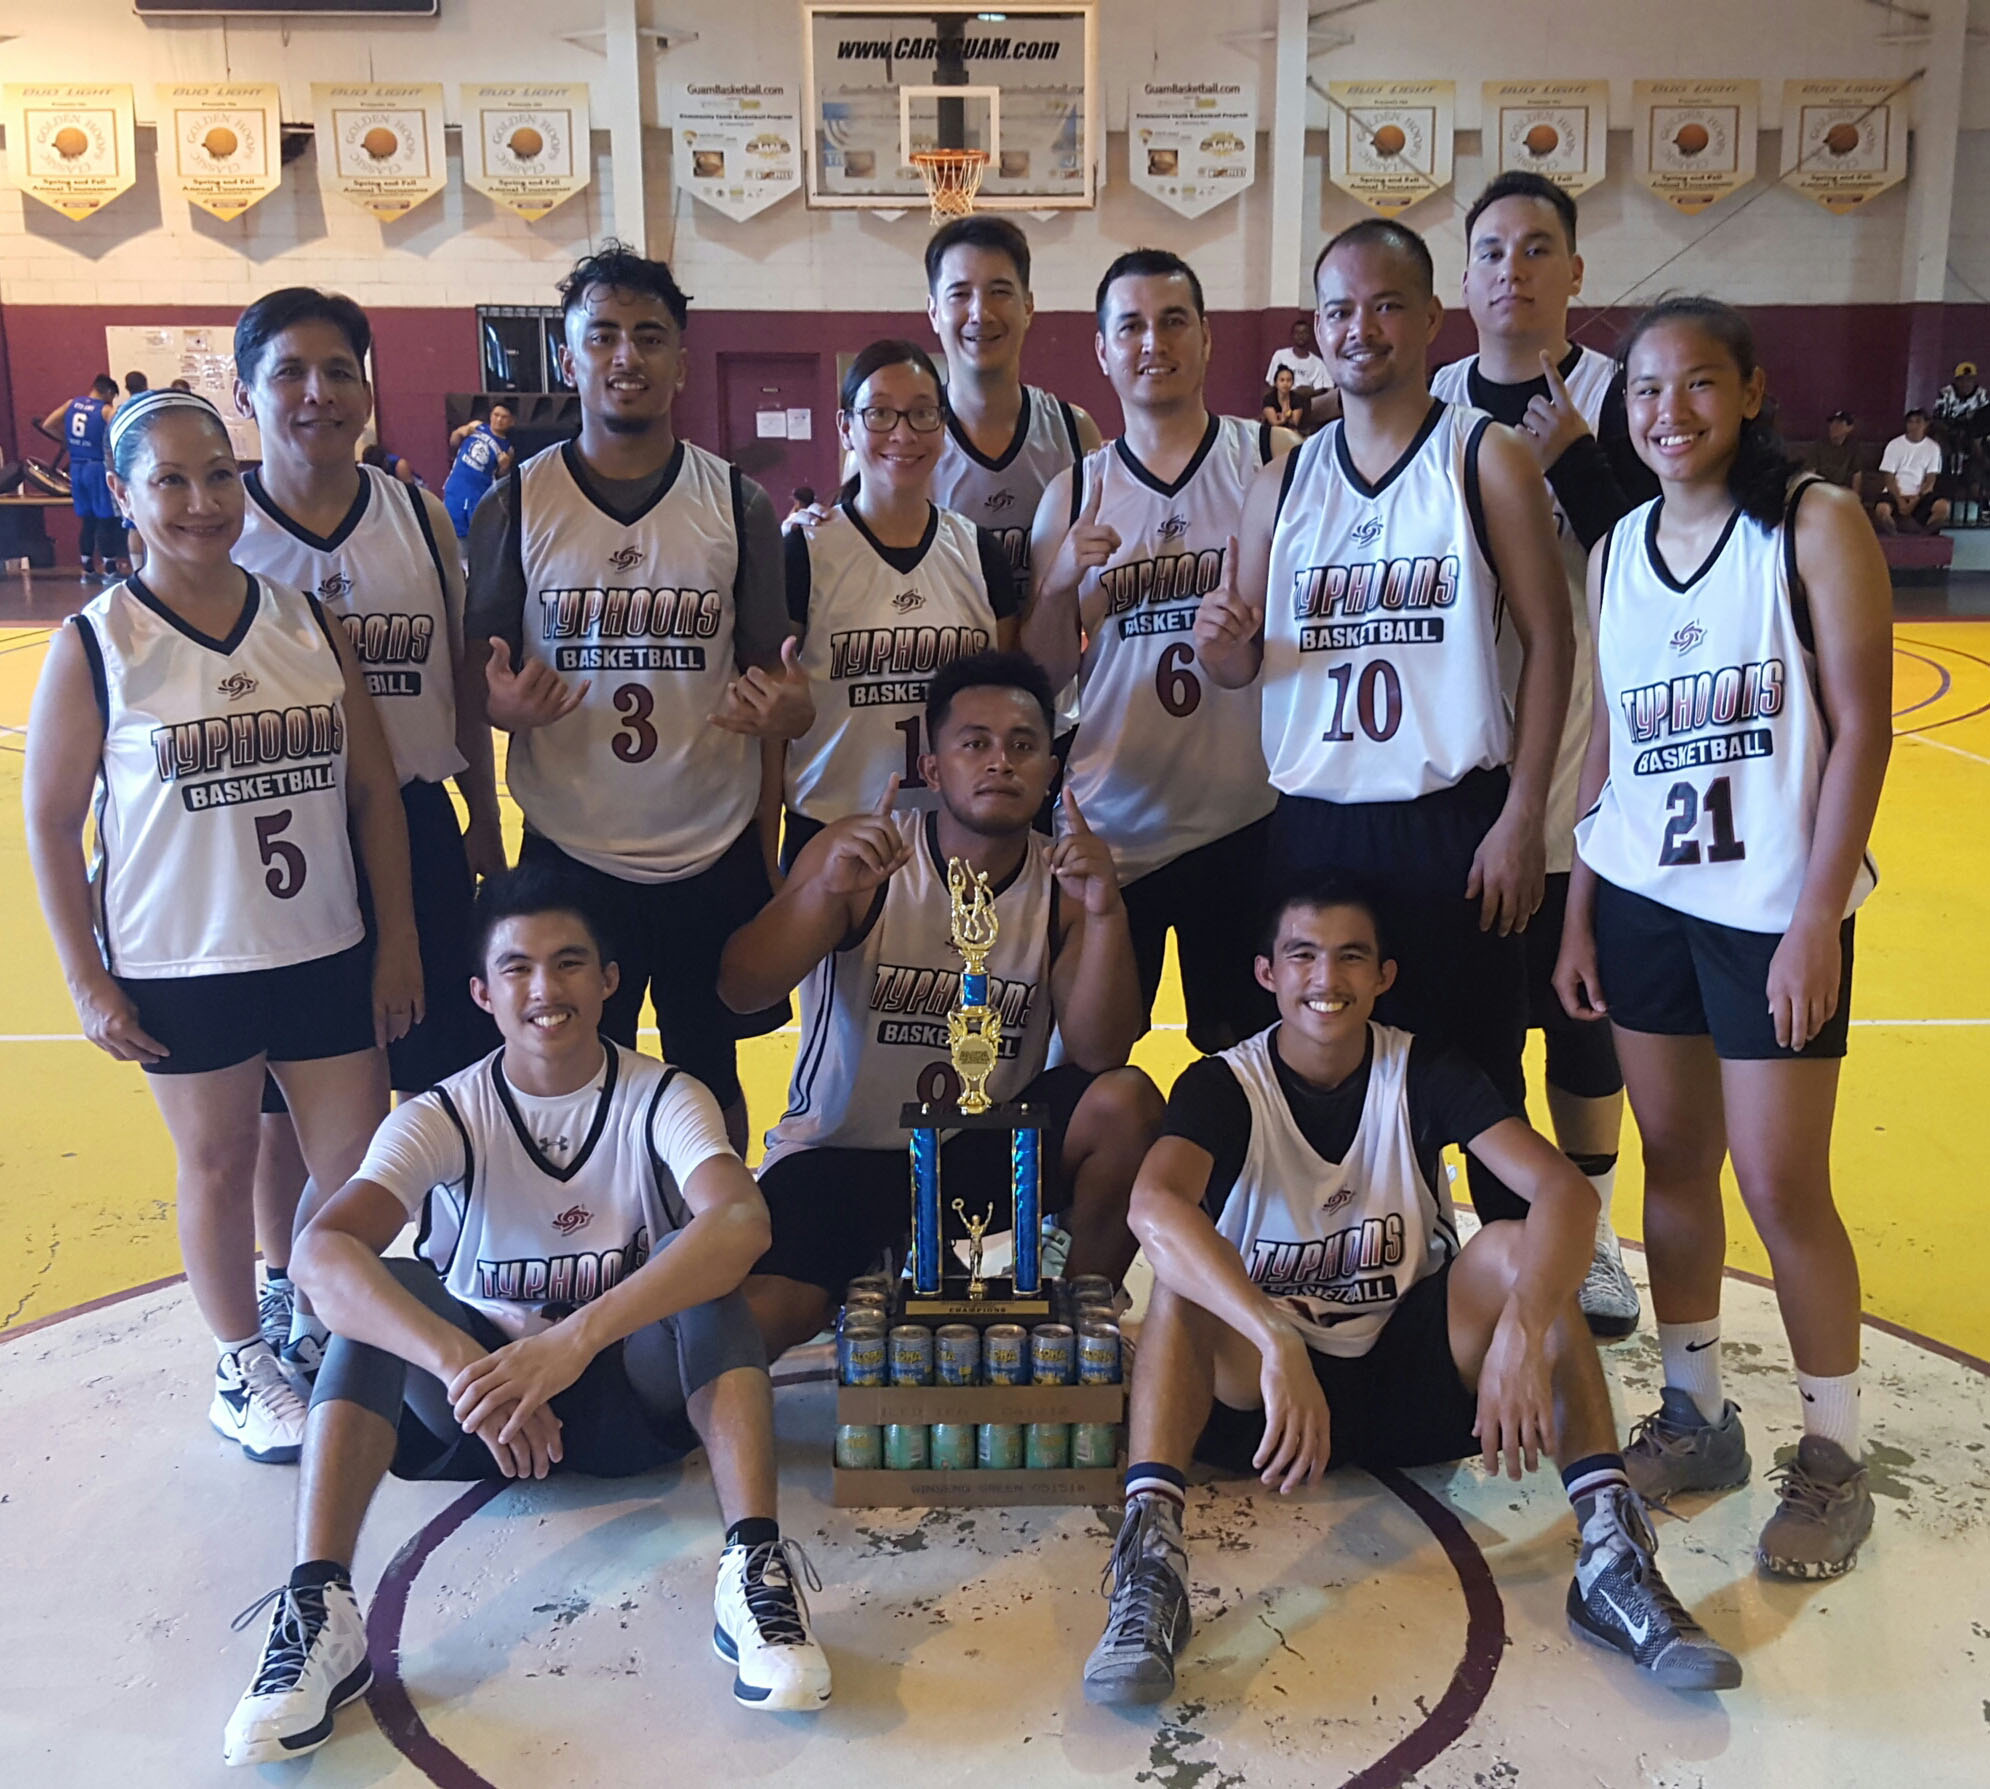 Coed Rec Champs - Tamuning Typhoons